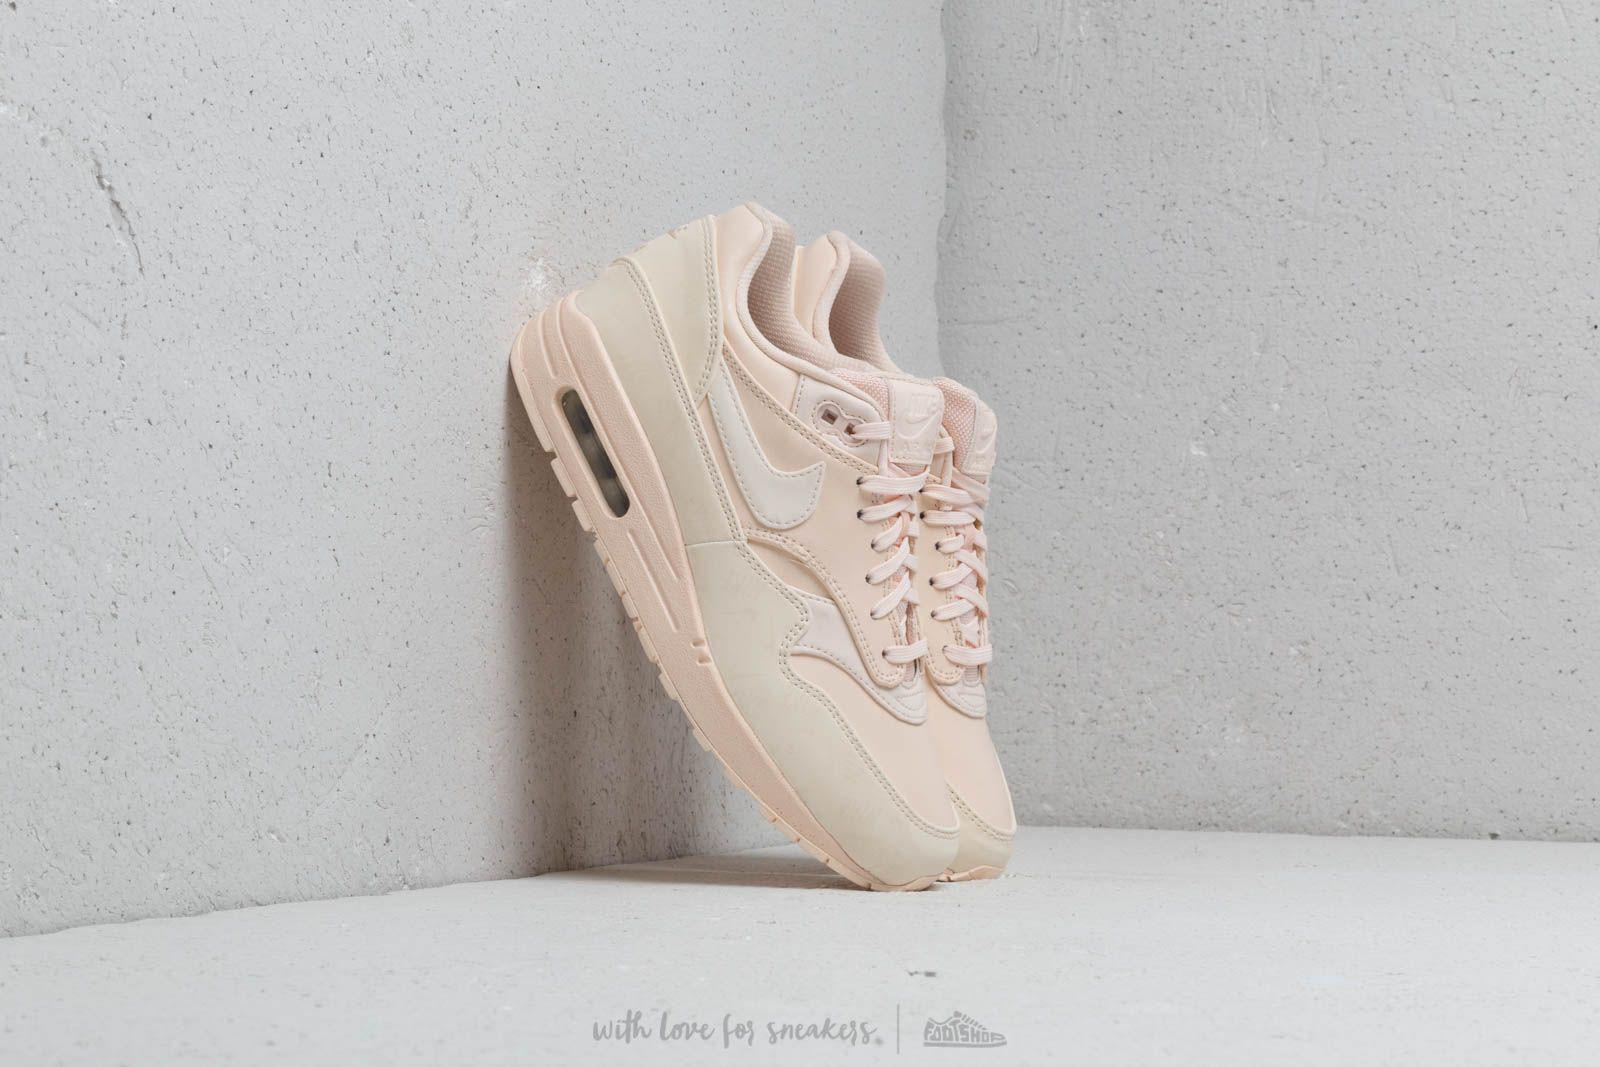 Nike Air Max 1 Lx Shoe in Guava Ice/ Guava Ice-Guava Ice (Natural ...